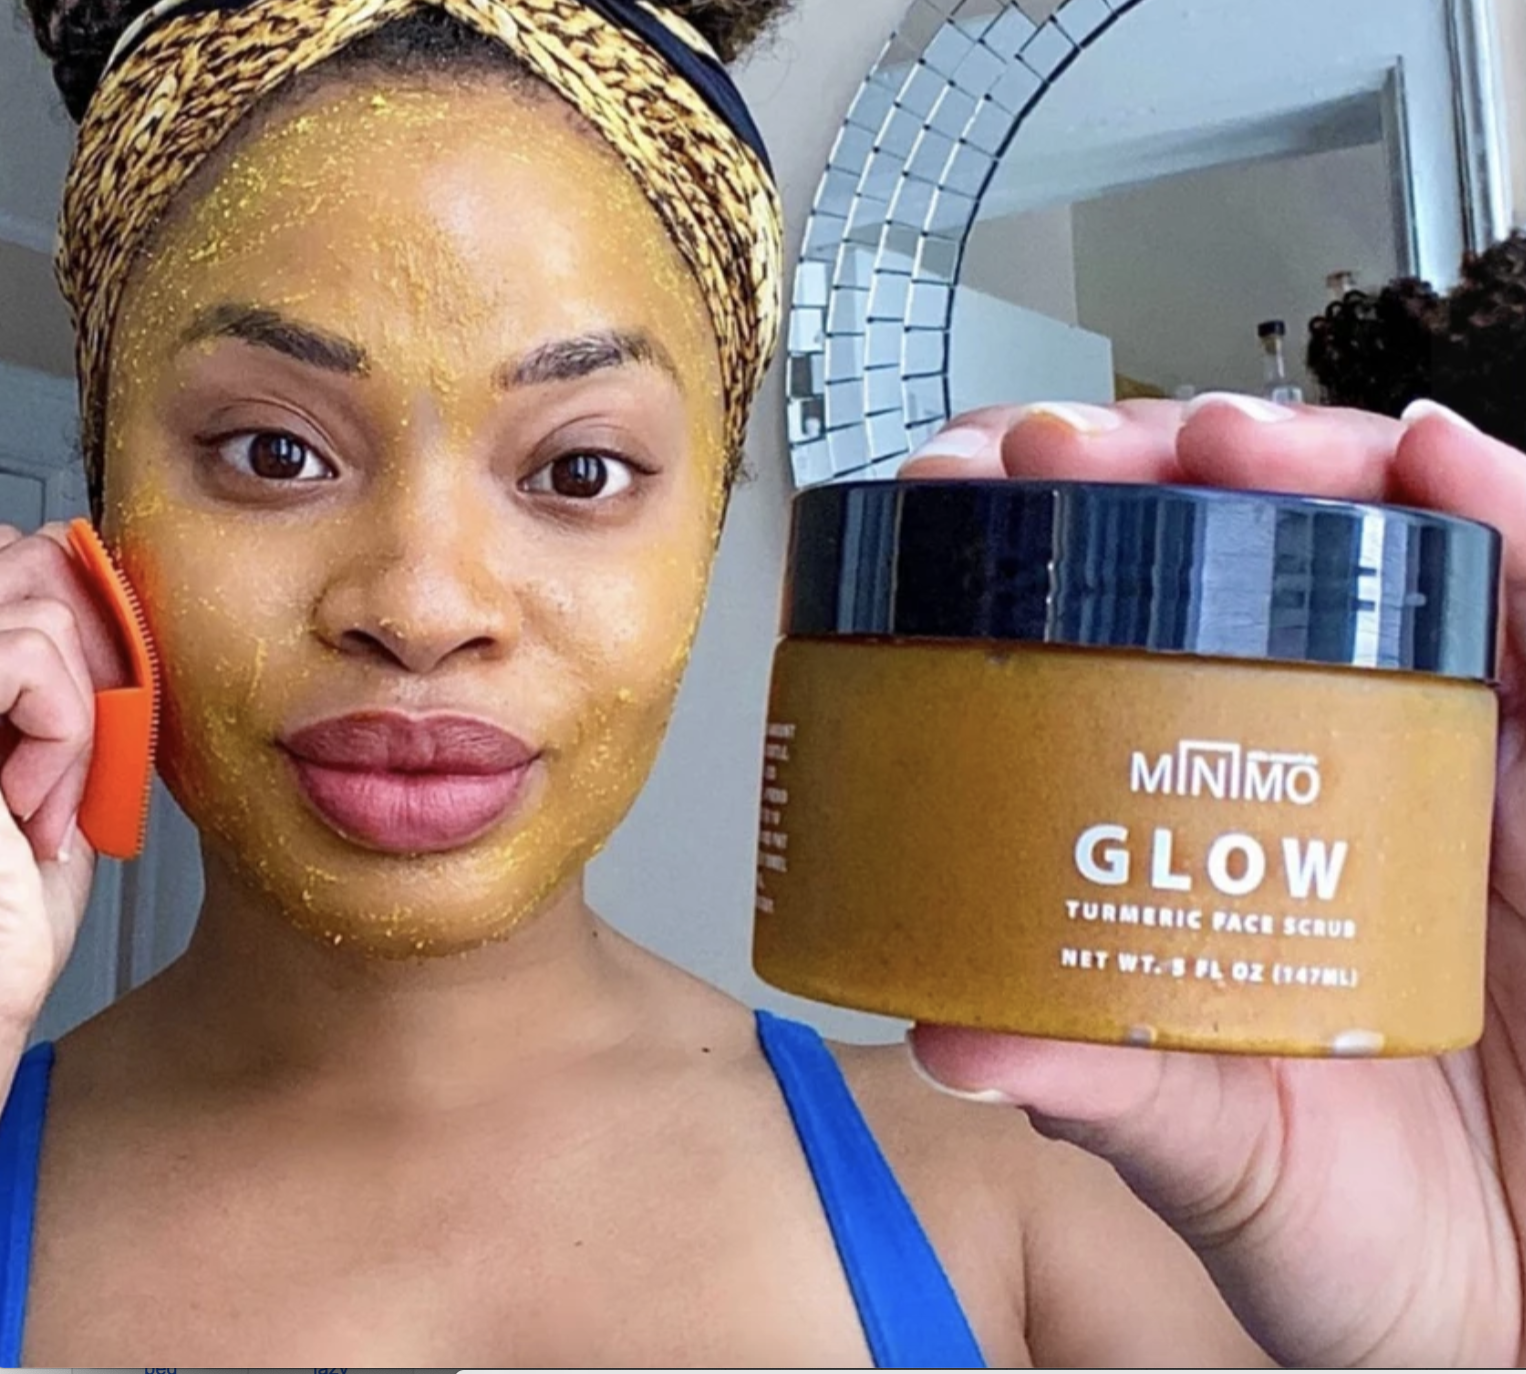 Model with turmeric face scrub on their face, holding the jar of it to the camera